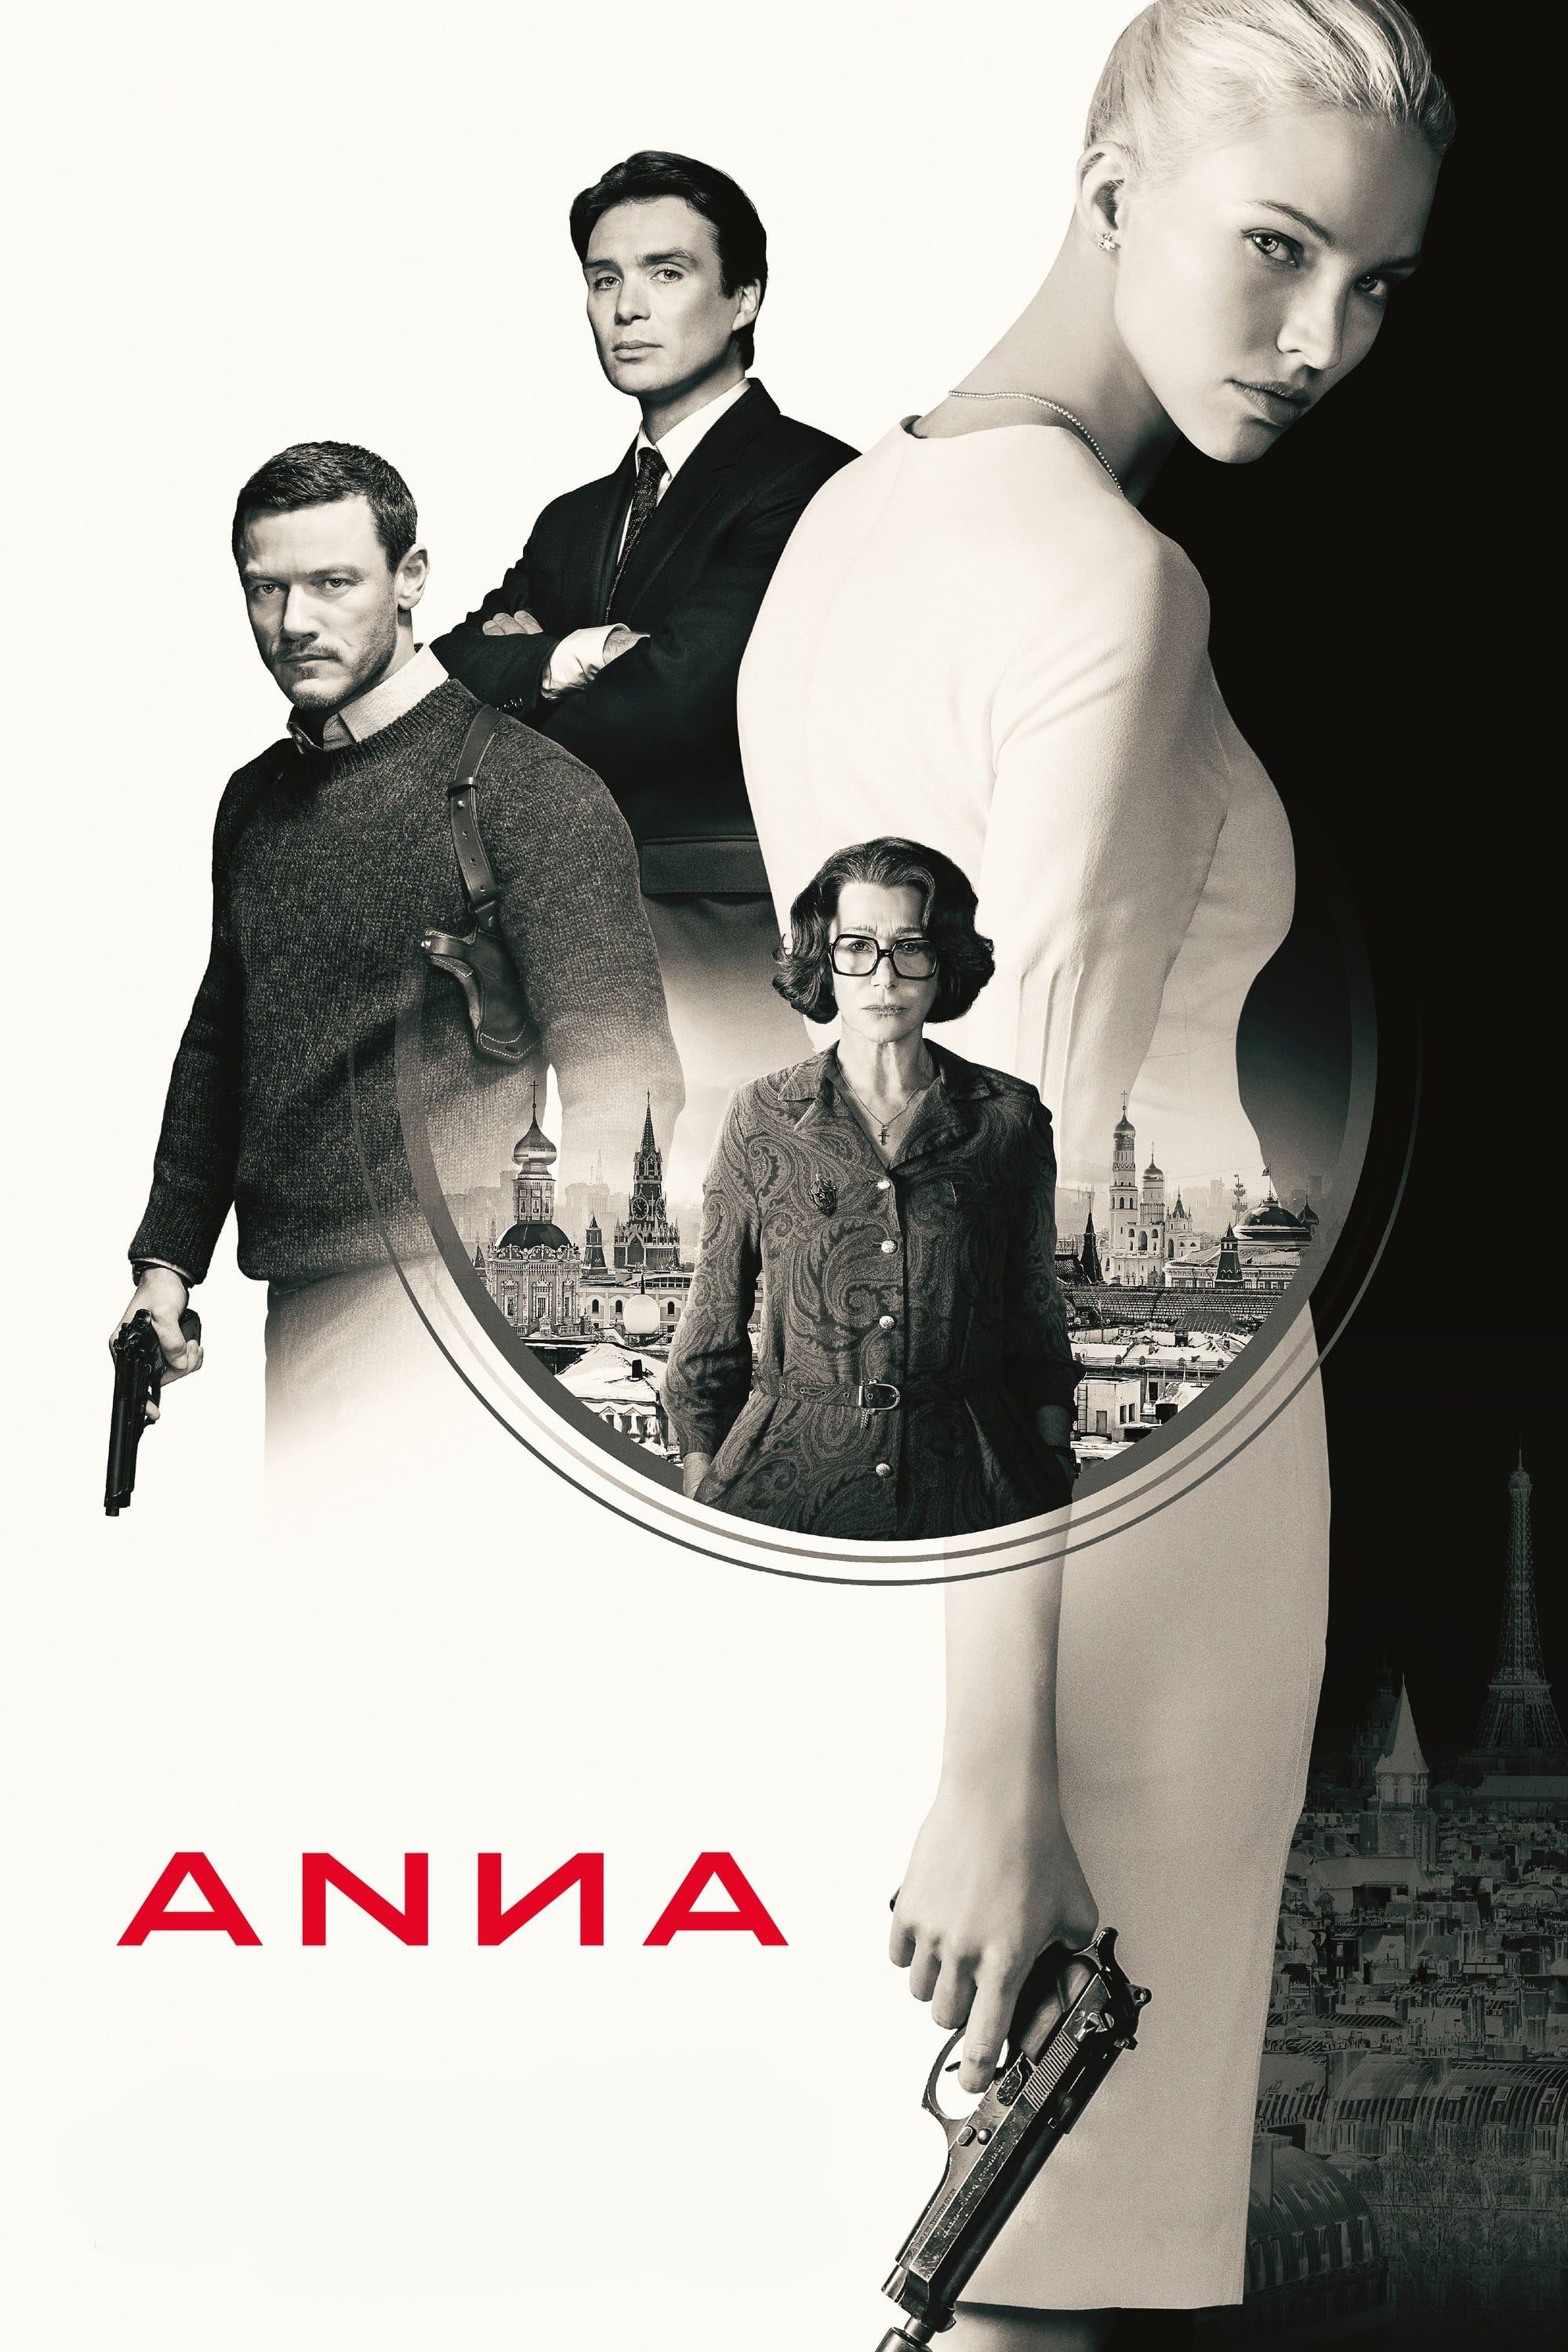 Peliculas Anna 9657 8762 Online Gratis Español Latino Anna Full Movi Anna Movie Full Movies Film